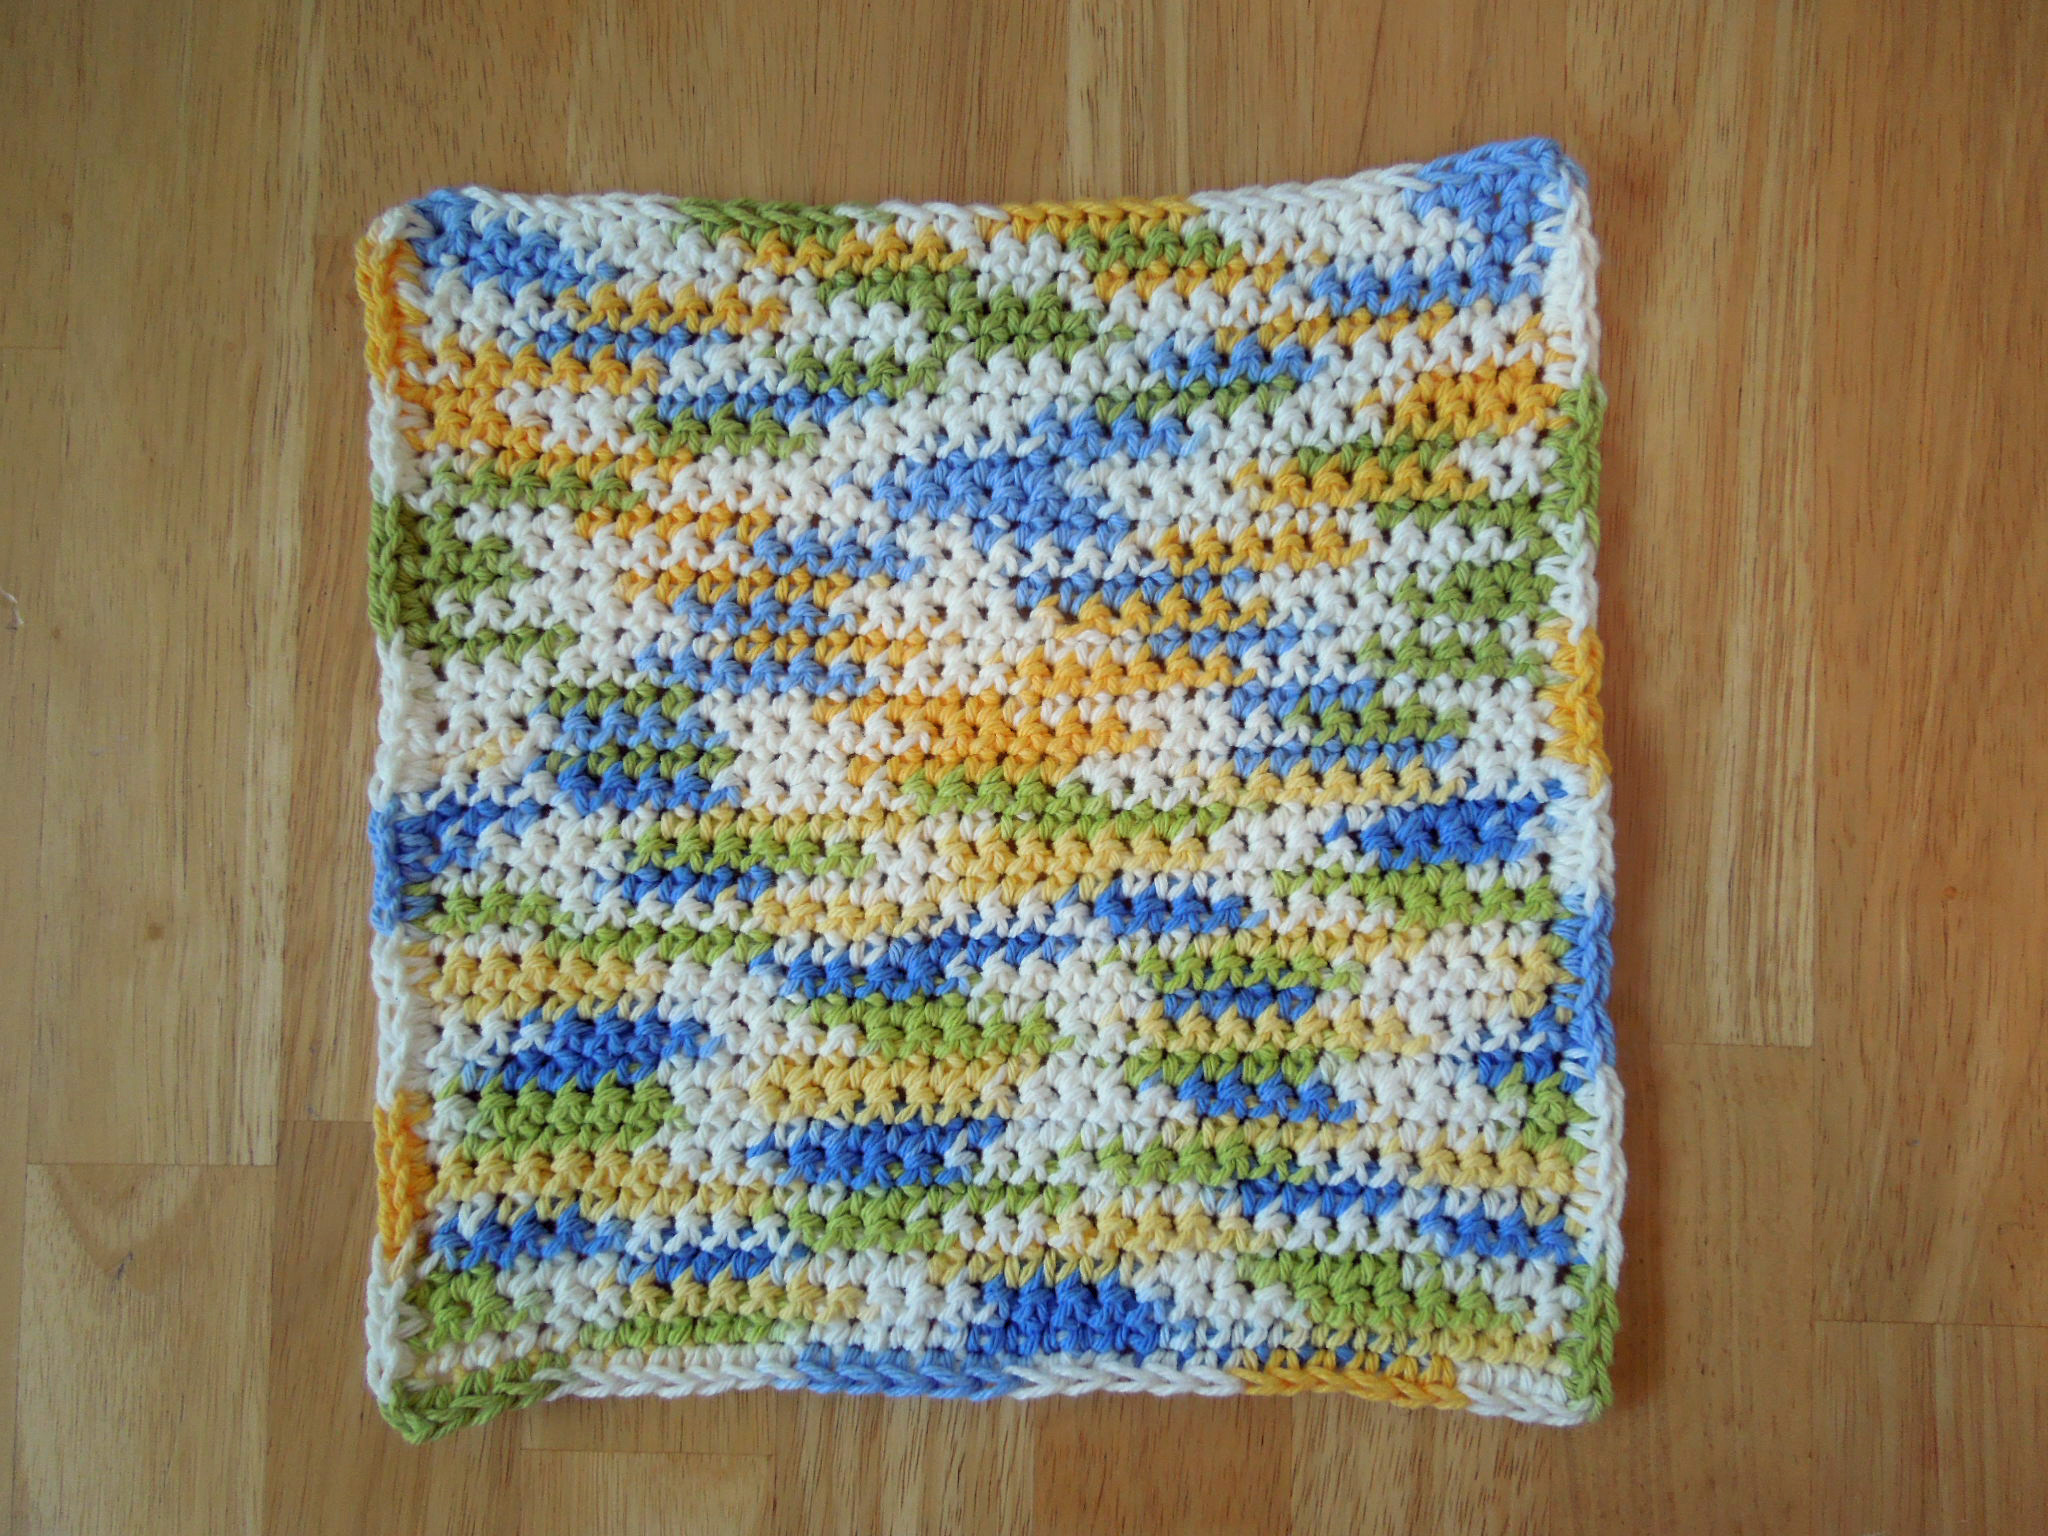 May 11, · I love how Kara from Petals to Picots uses two basic crochet stitches to create this beautifully textured dishcloth! Her pattern is so incredibly simple that I could probably make another one from memory although it's been a few weeks since I made this sweet yellow one!Author: Little Miss Stitcher.